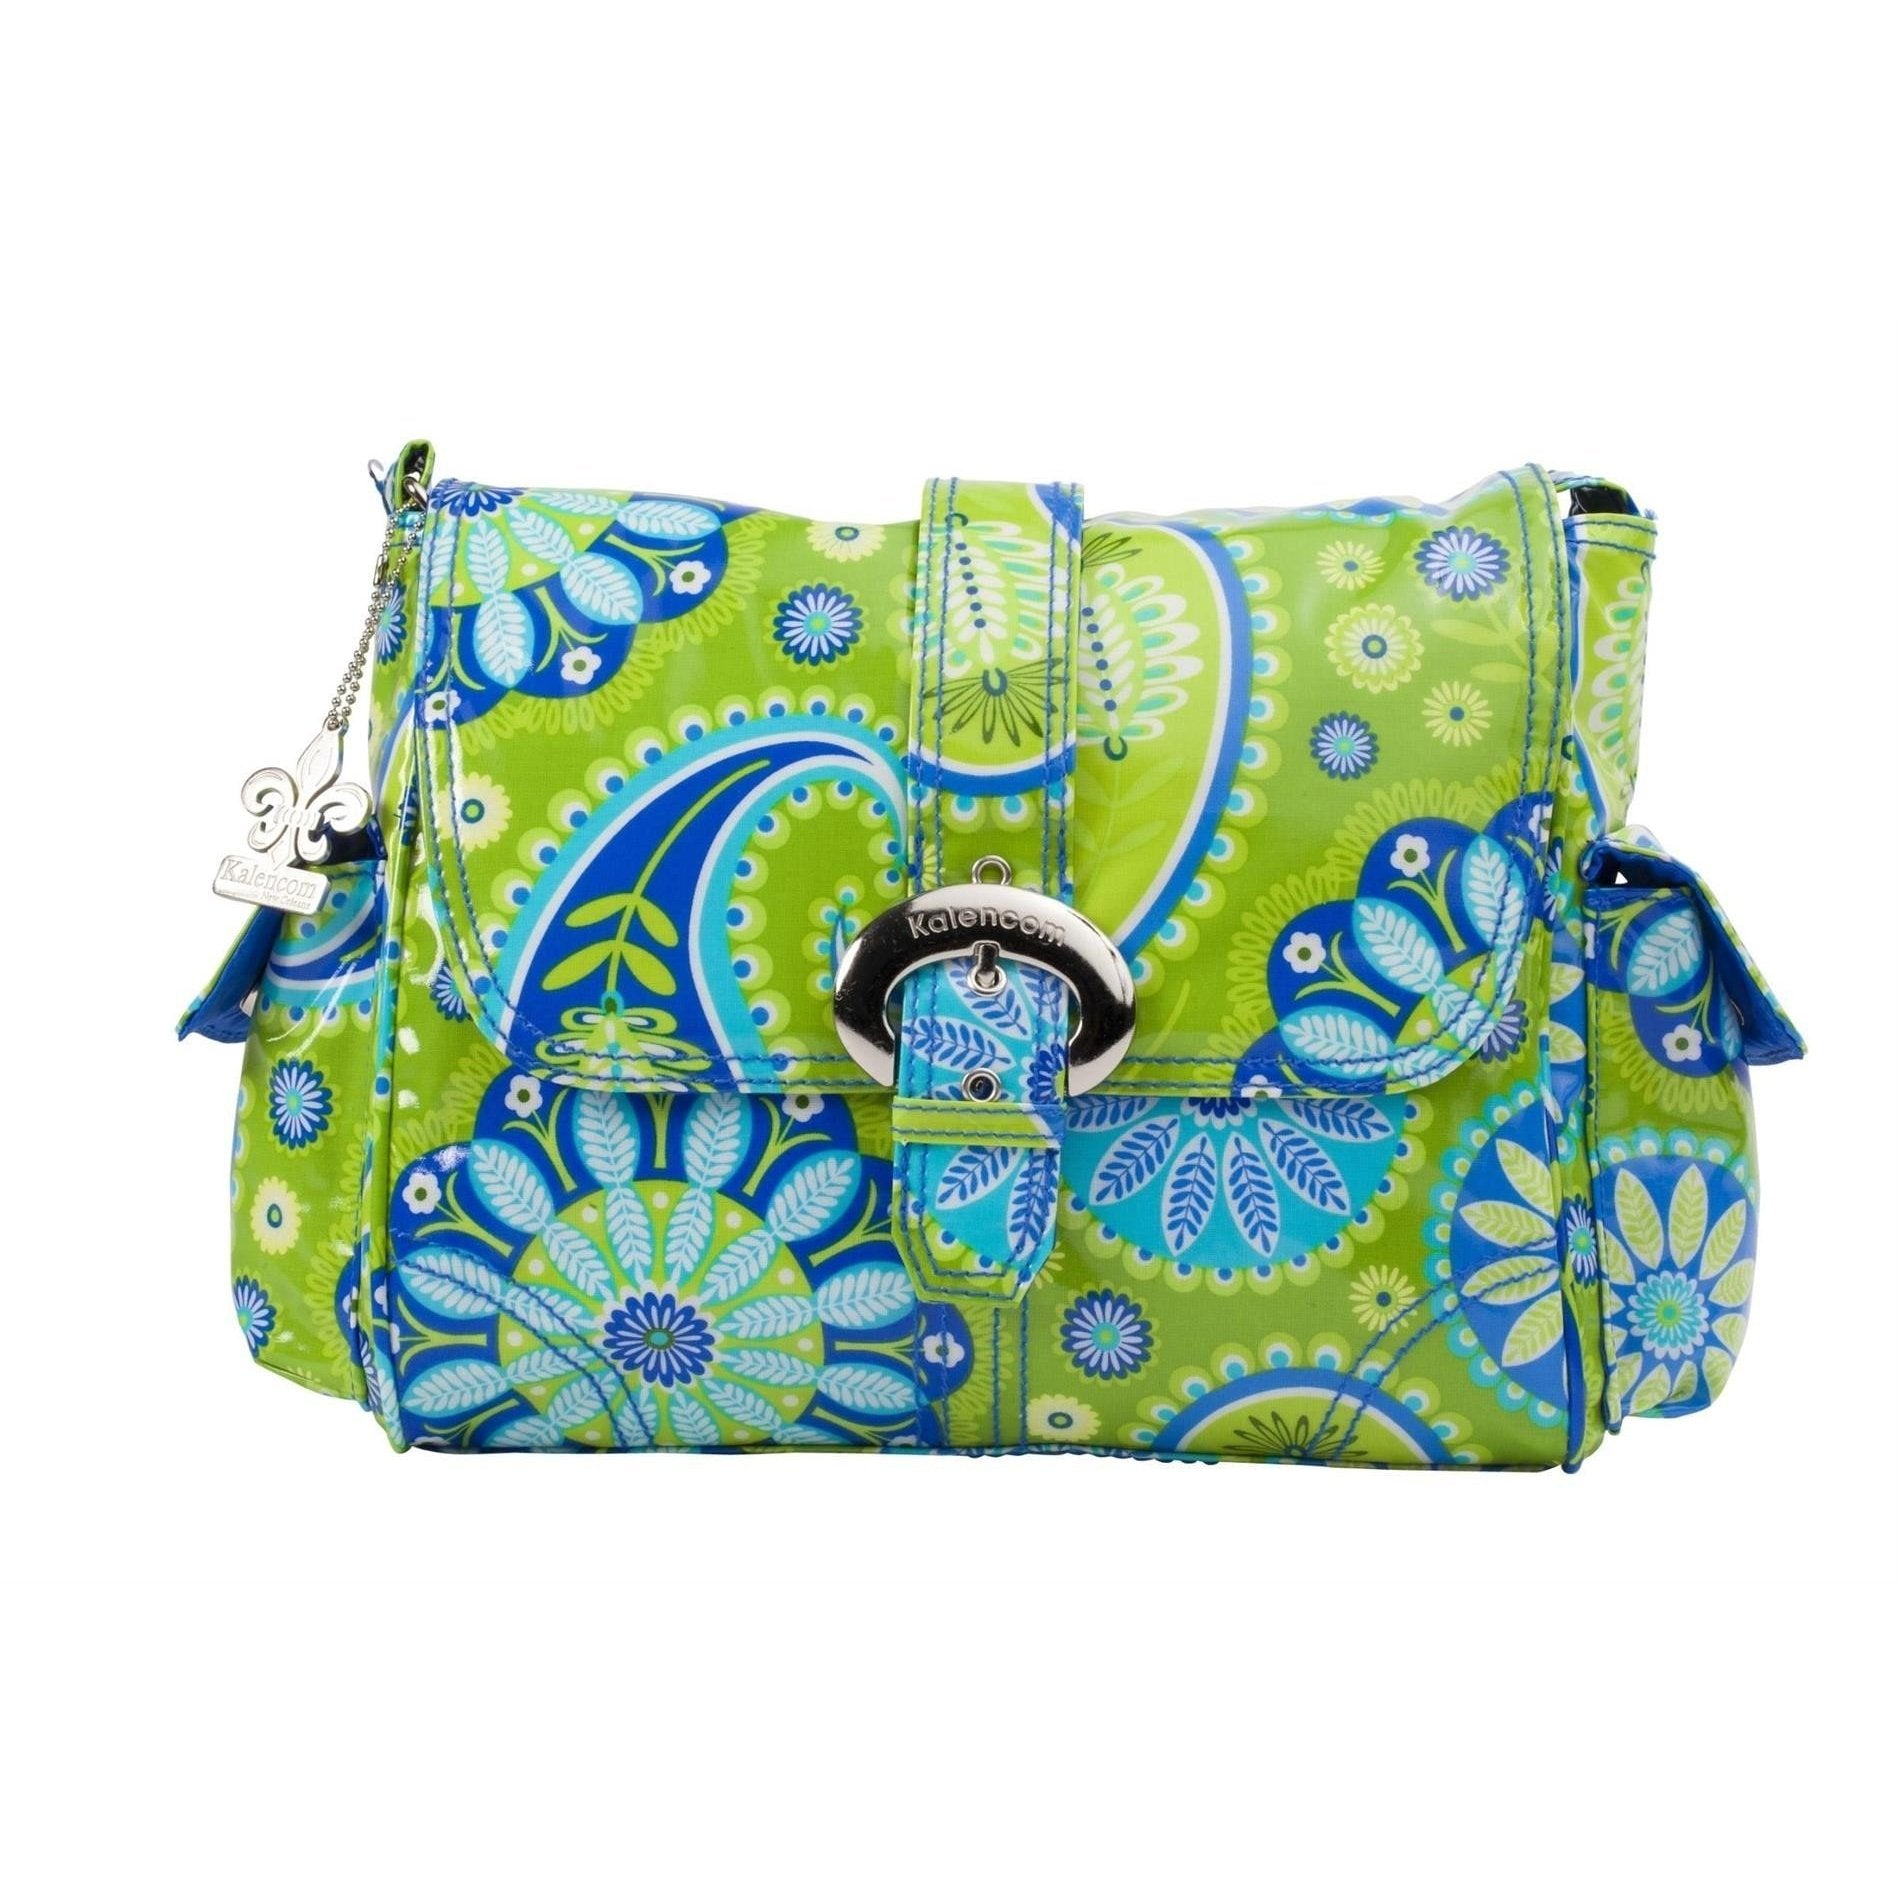 Gypsy Paisley Green Midi Coated Buckle Diaper Bag | Style 2959 - Kalencom-Diaper Bags-Default-Jack and Jill Boutique